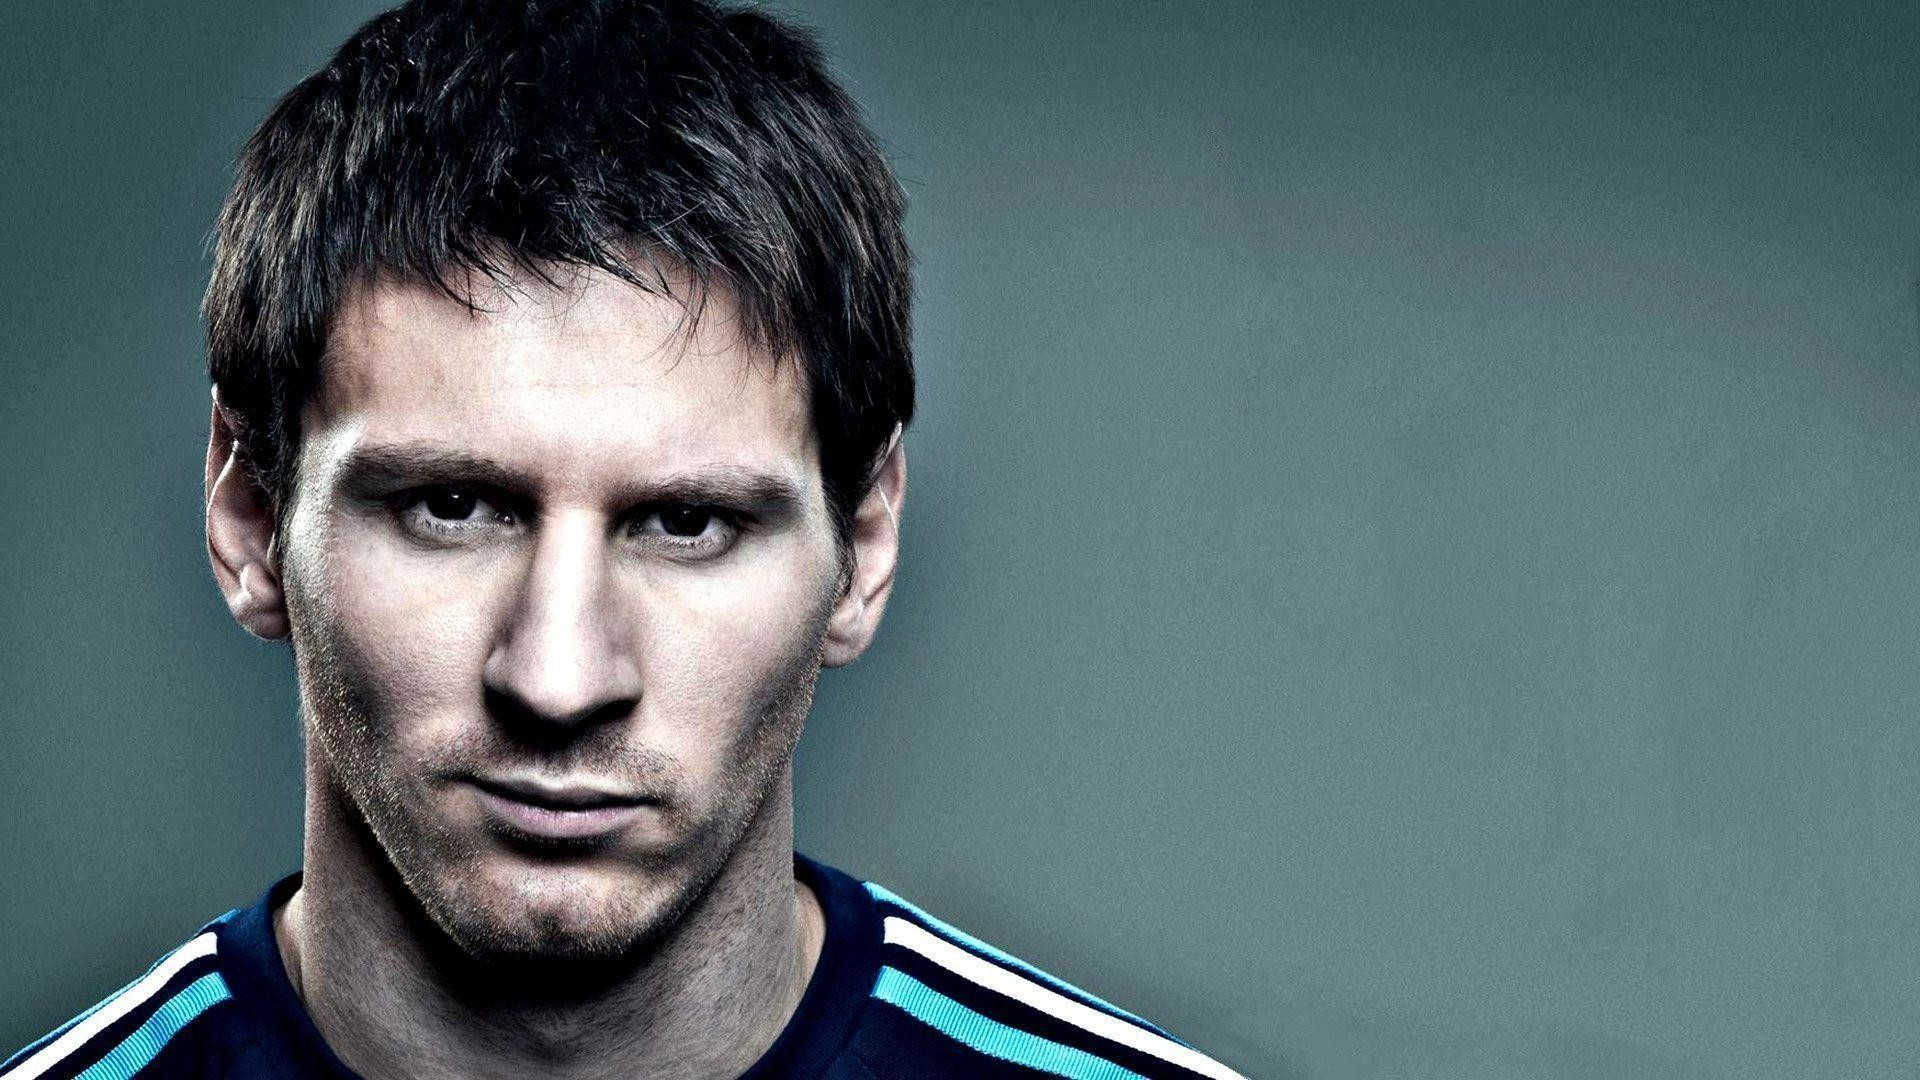 Wallpapers Lionel Messi 2016 – Wallpaper Cave